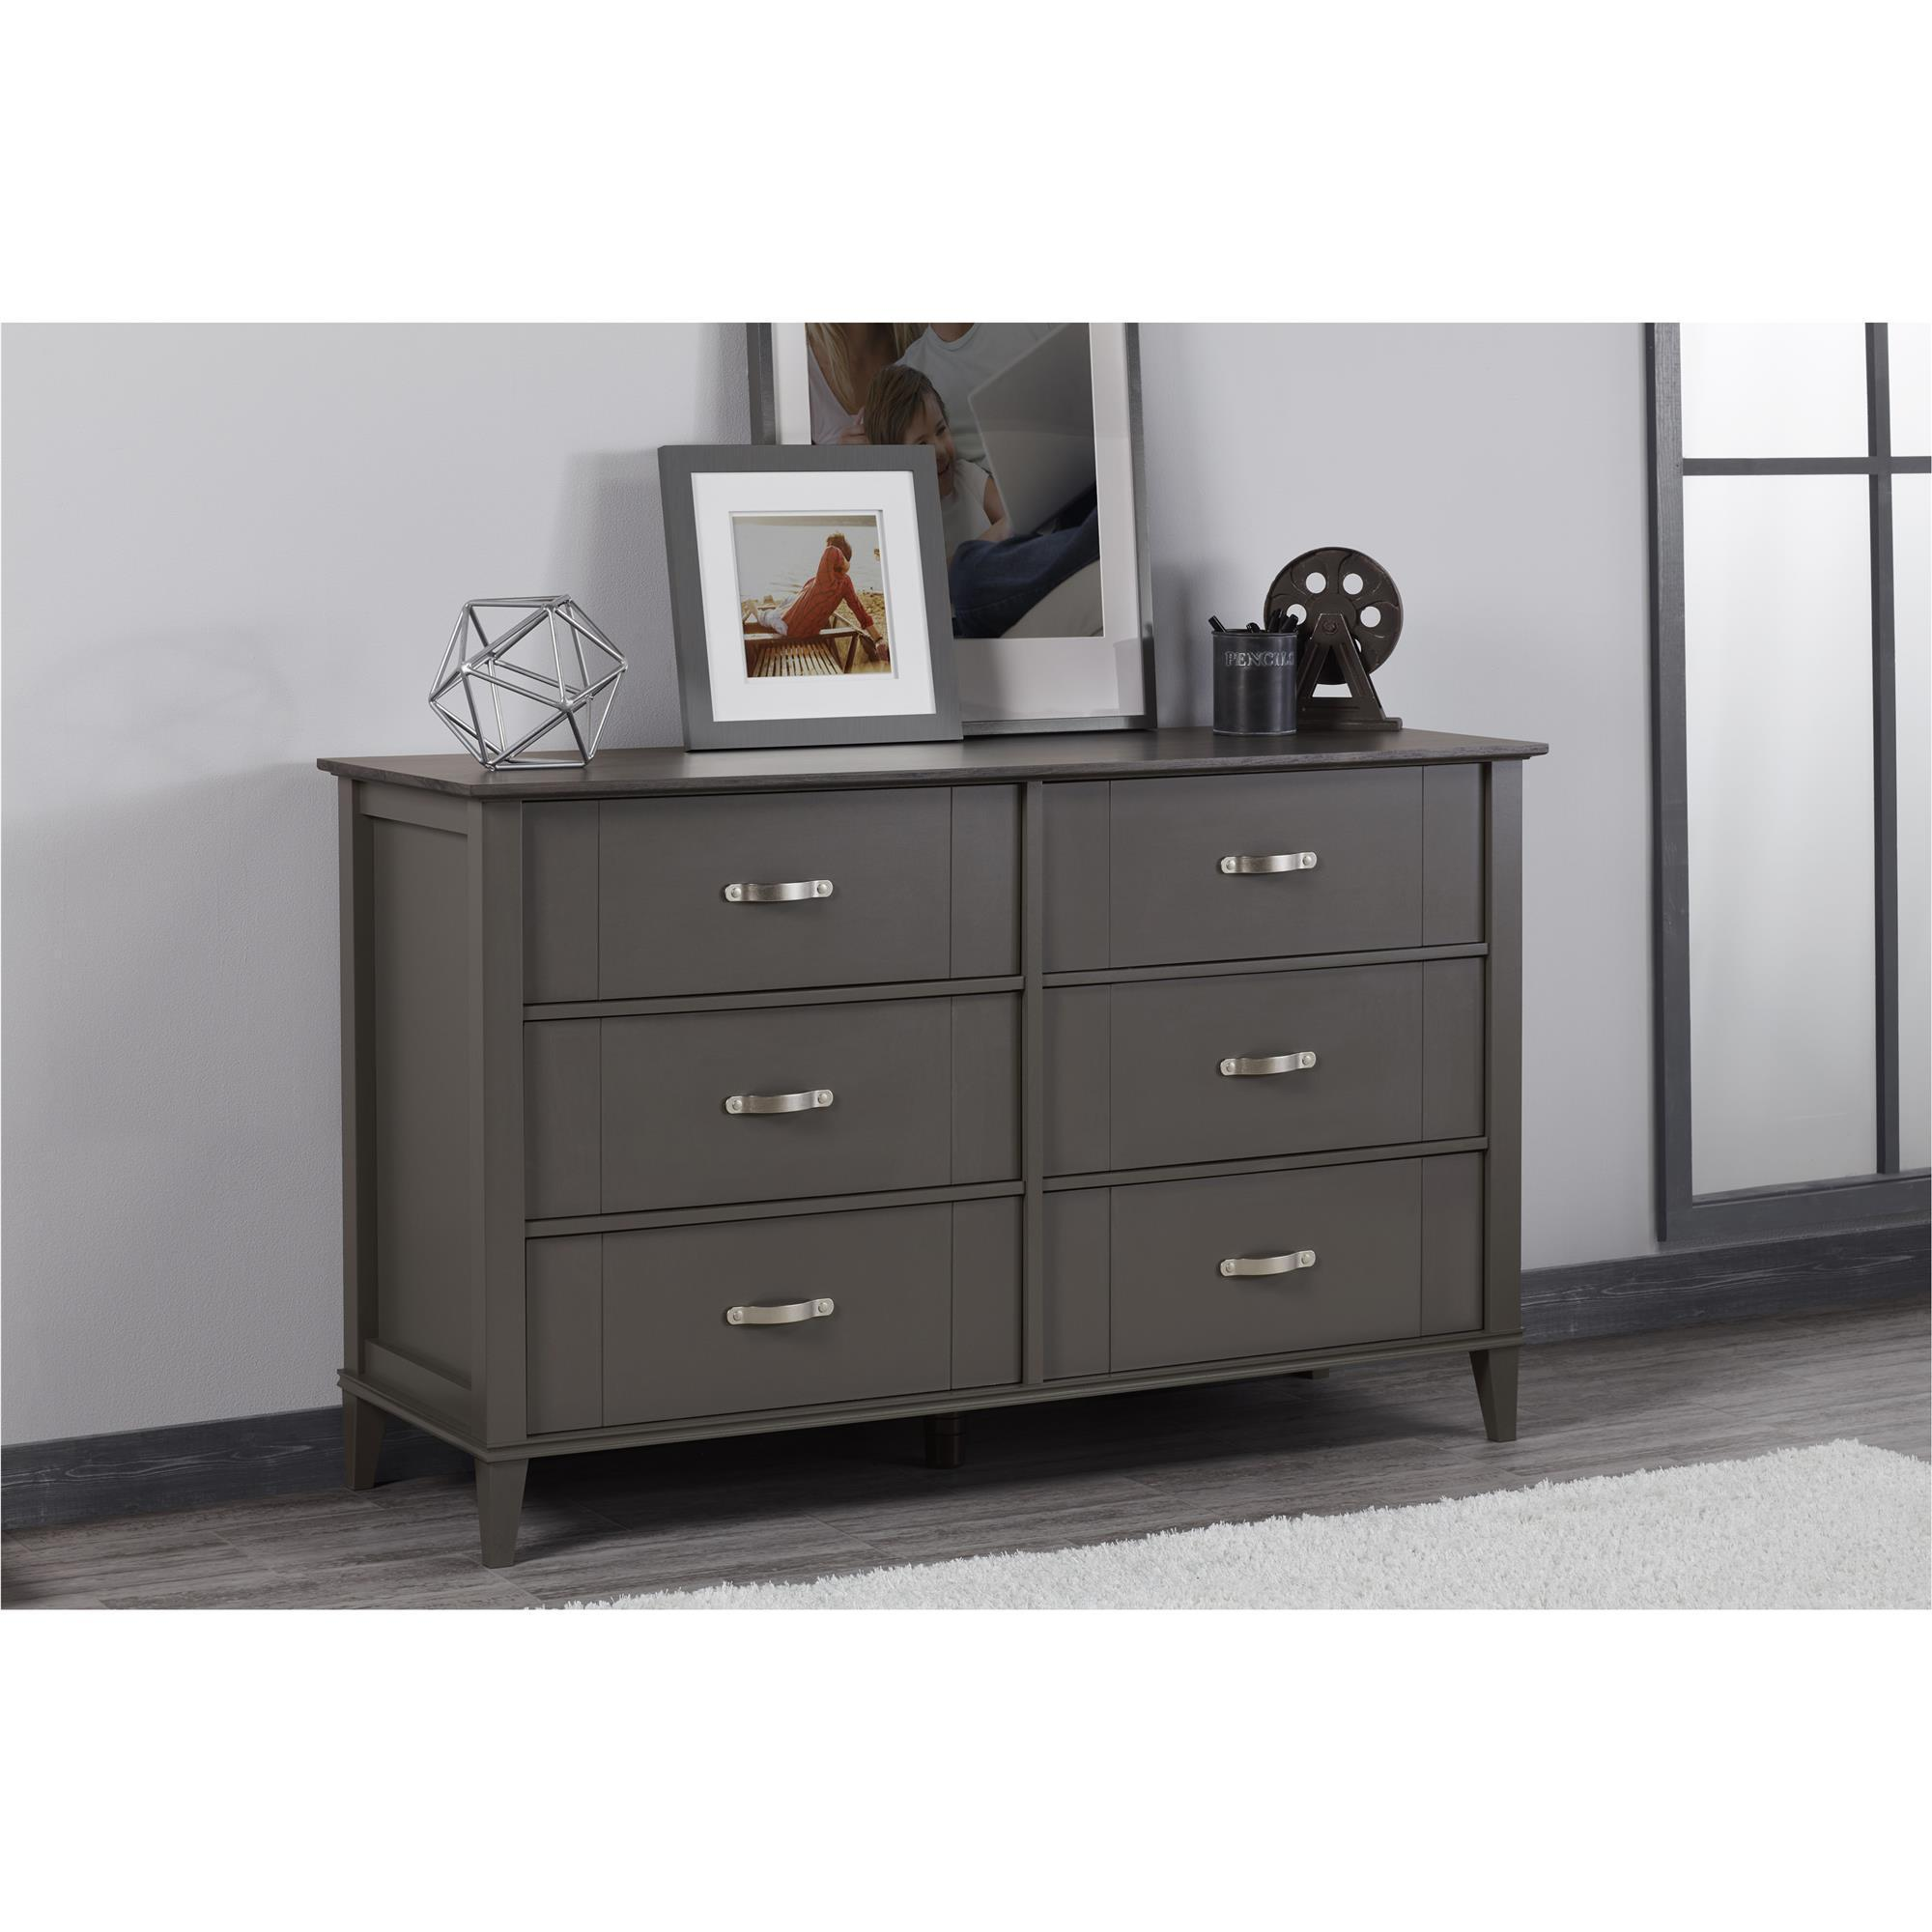 drawers lacquer zoomed pin and image customer farmhouse drawer modern dresser black lignite